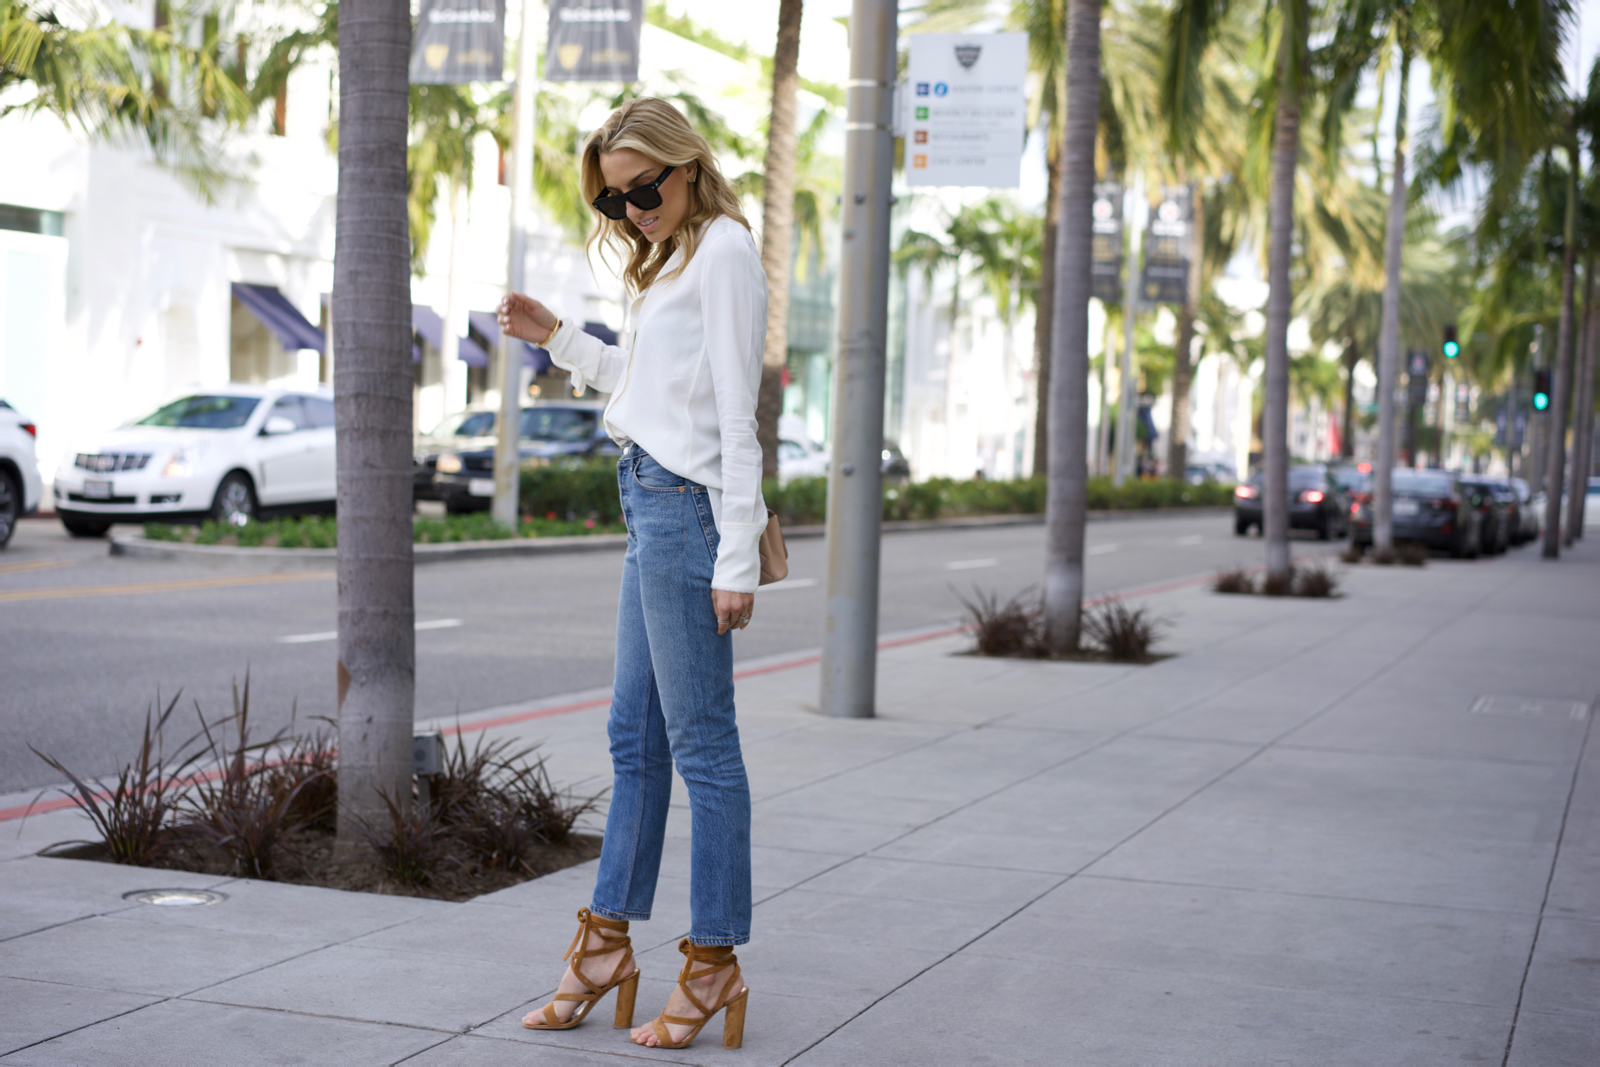 Helmut Lang Open Back Top, Levi's Jean, Chanel shoes and bag, Givenchy, Gianvito Rossi Shoes, California, Rodeo Drive